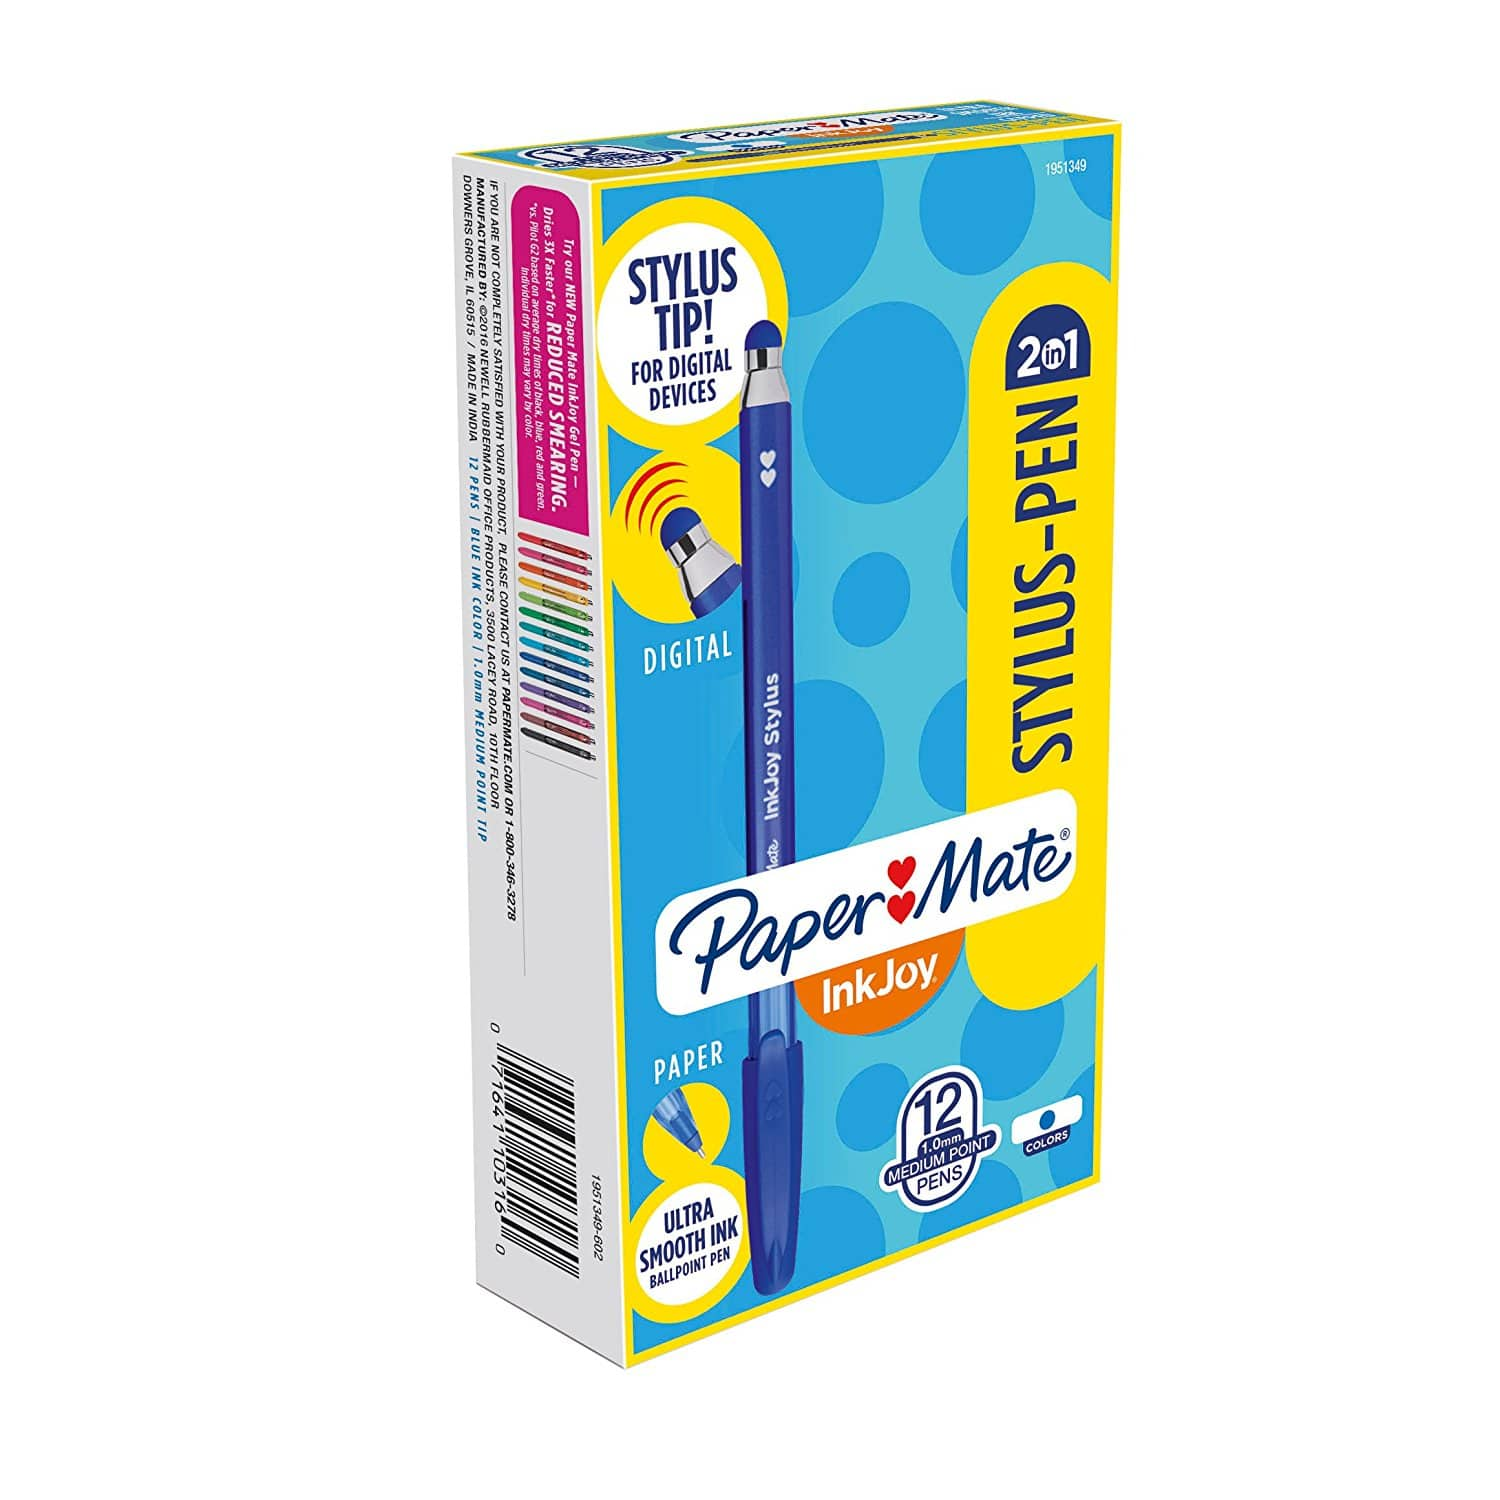 Paper Mate InkJoy 2 in 1 Stylus Ballpoint Pens, Medium Point, Blue, Box of 12 Add-on $7.31